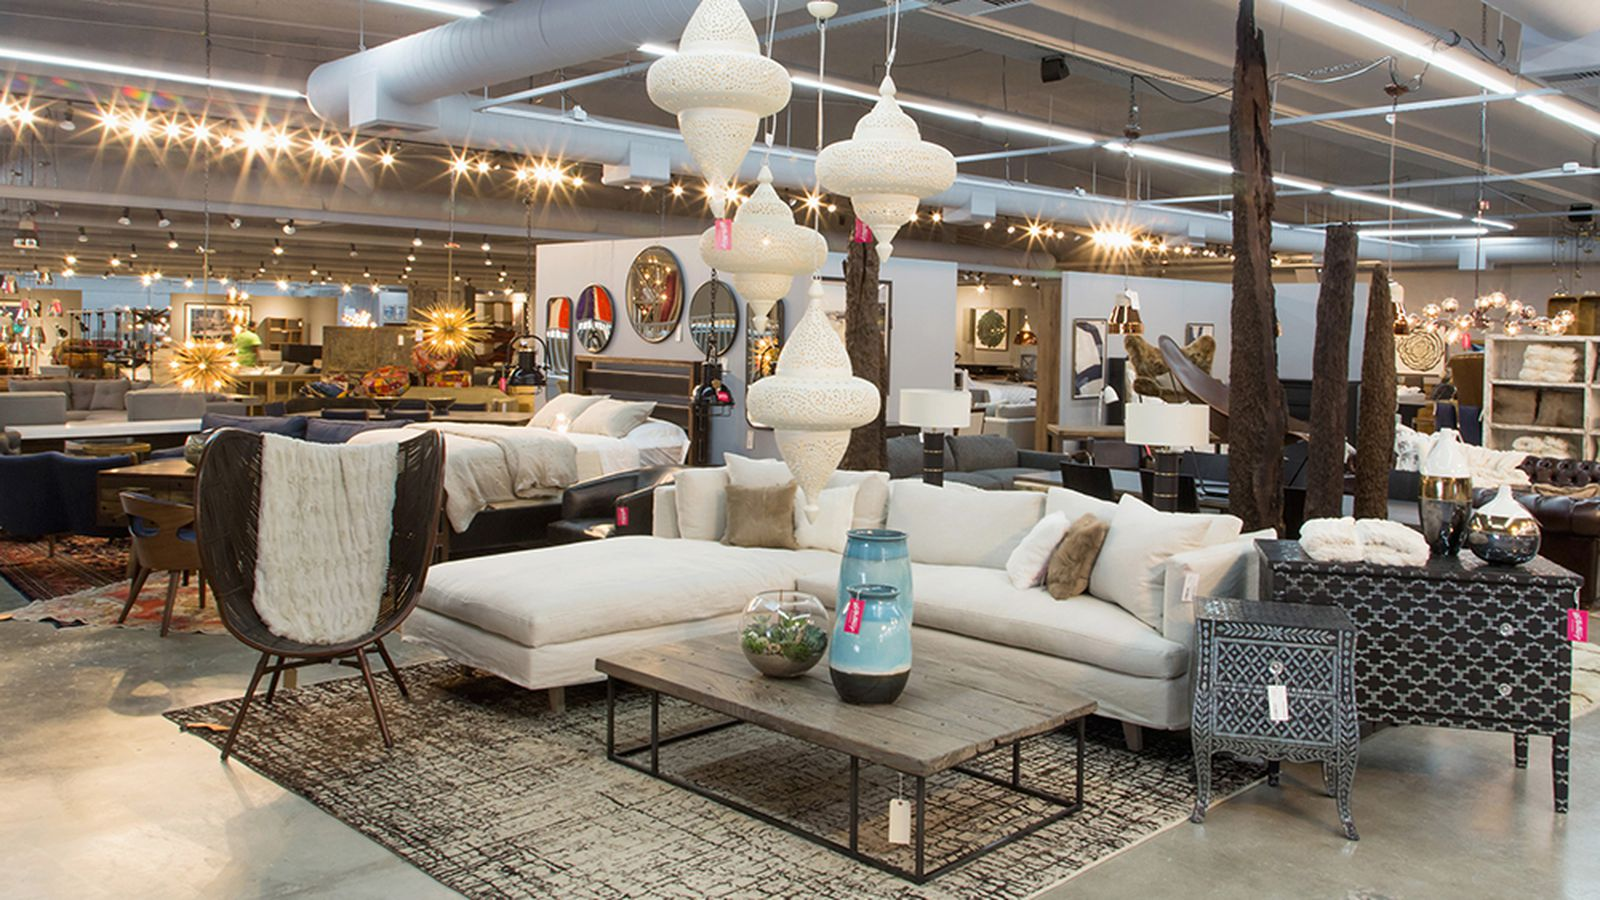 Hd Buttercup S Stylish Home Furnishings Are Coming To Dtla